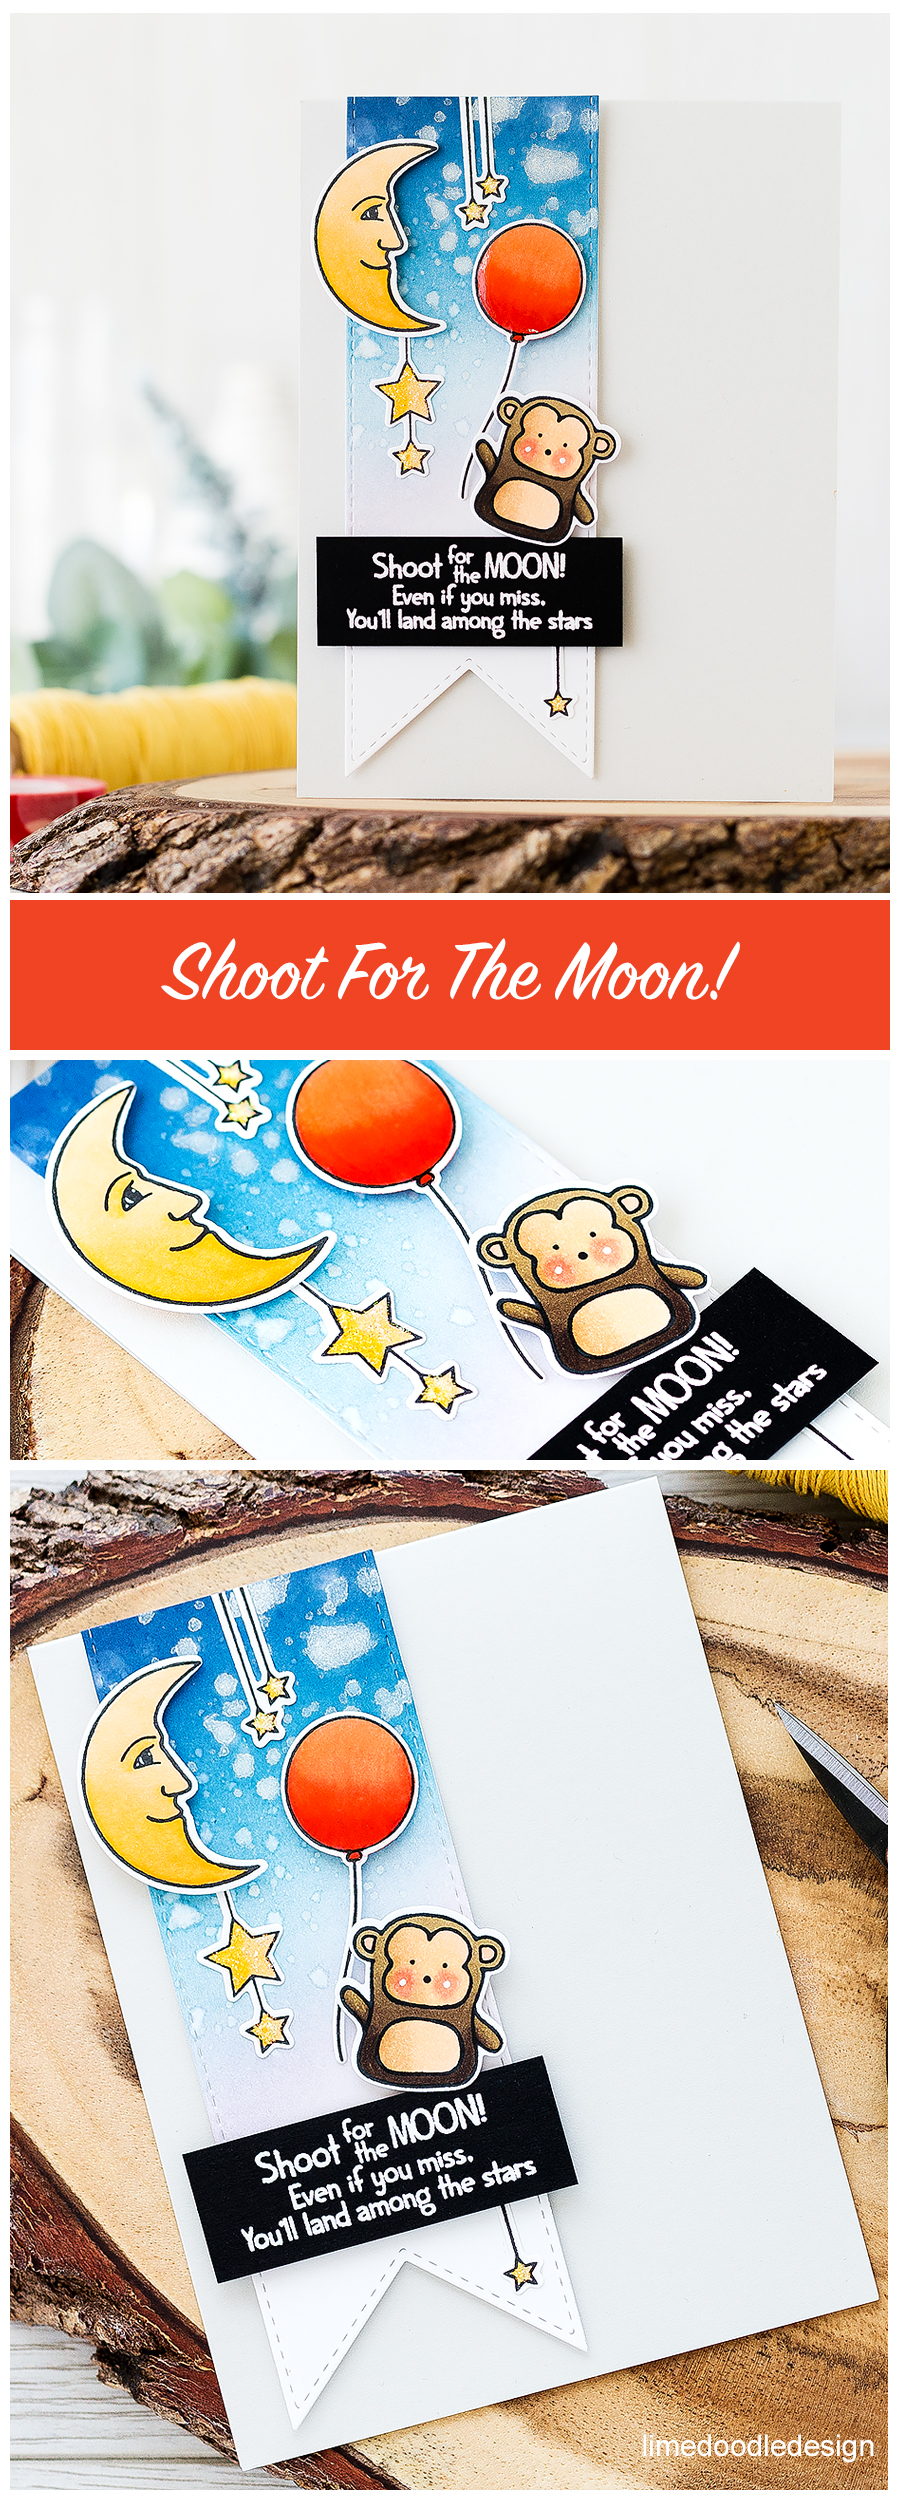 Shoot for the moon encouragement card. Find out more by clicking on the following link: http://limedoodledesign.com/2016/08/shoot-for-the-moon/